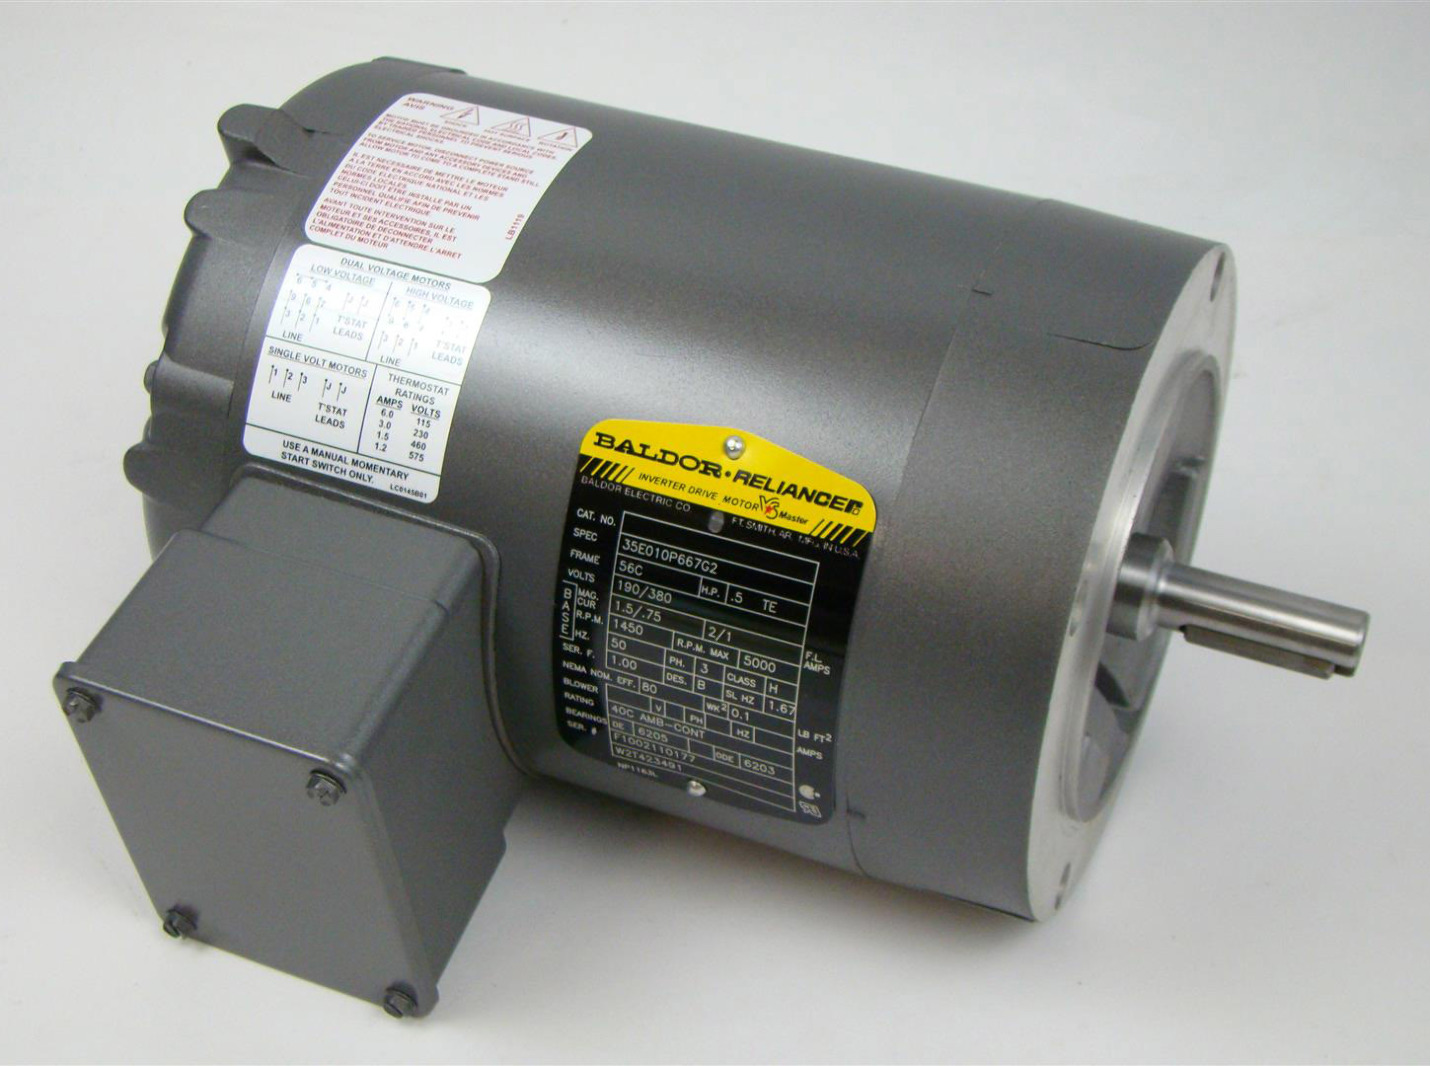 baldor reliancer inverter duty motor 1450rpm 3ph 56c 1 2hp